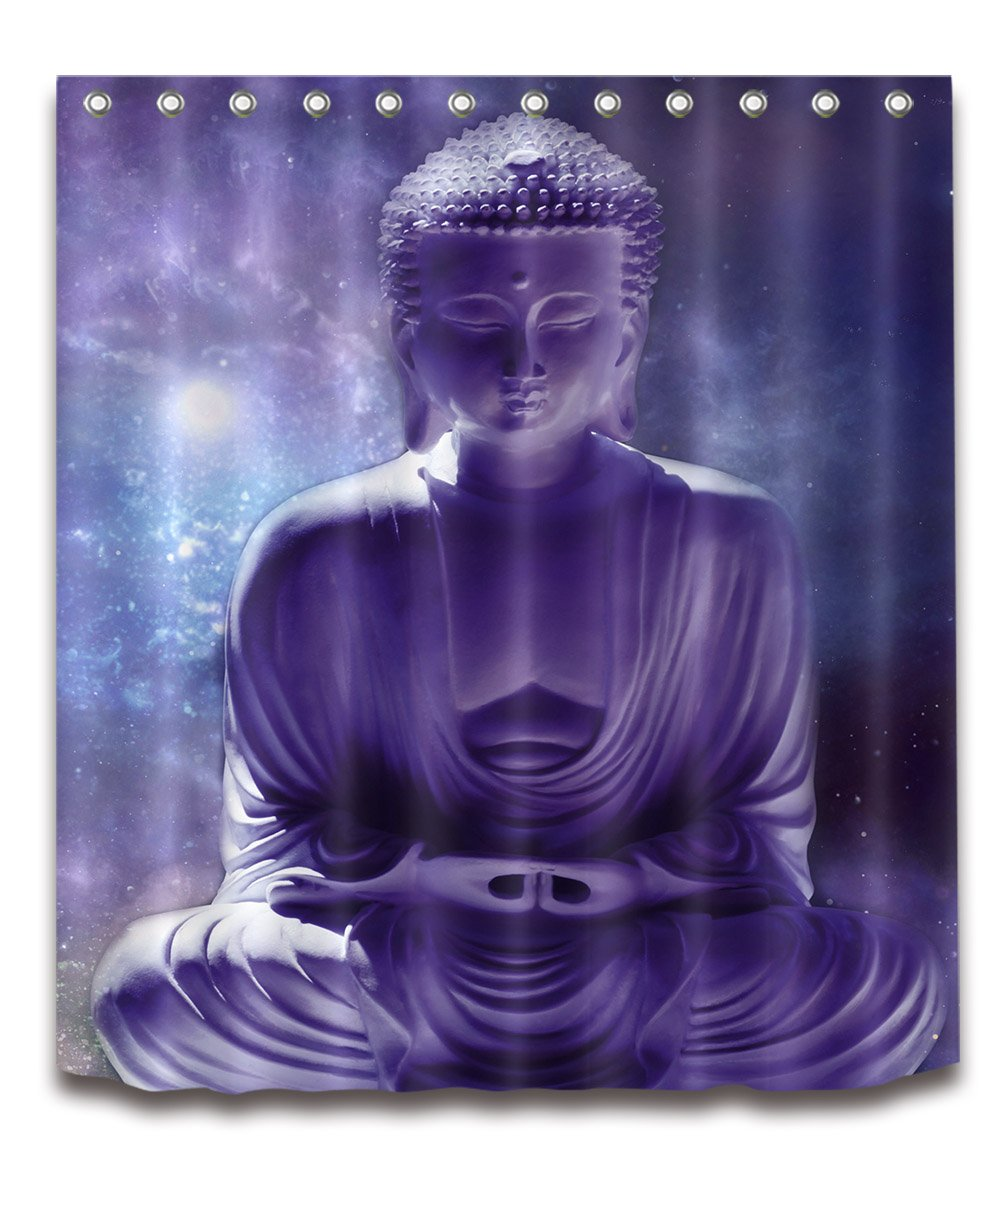 LB India Spa Zen Buddha Water Yoga Hot Spring Meditation Decoration Shower Curtain Polyester Fabric 3D 60x72 inch Mildew Resistant Waterproof Purple Sky Galaxy Bathroom Bath Curtains Liner Set Hooks